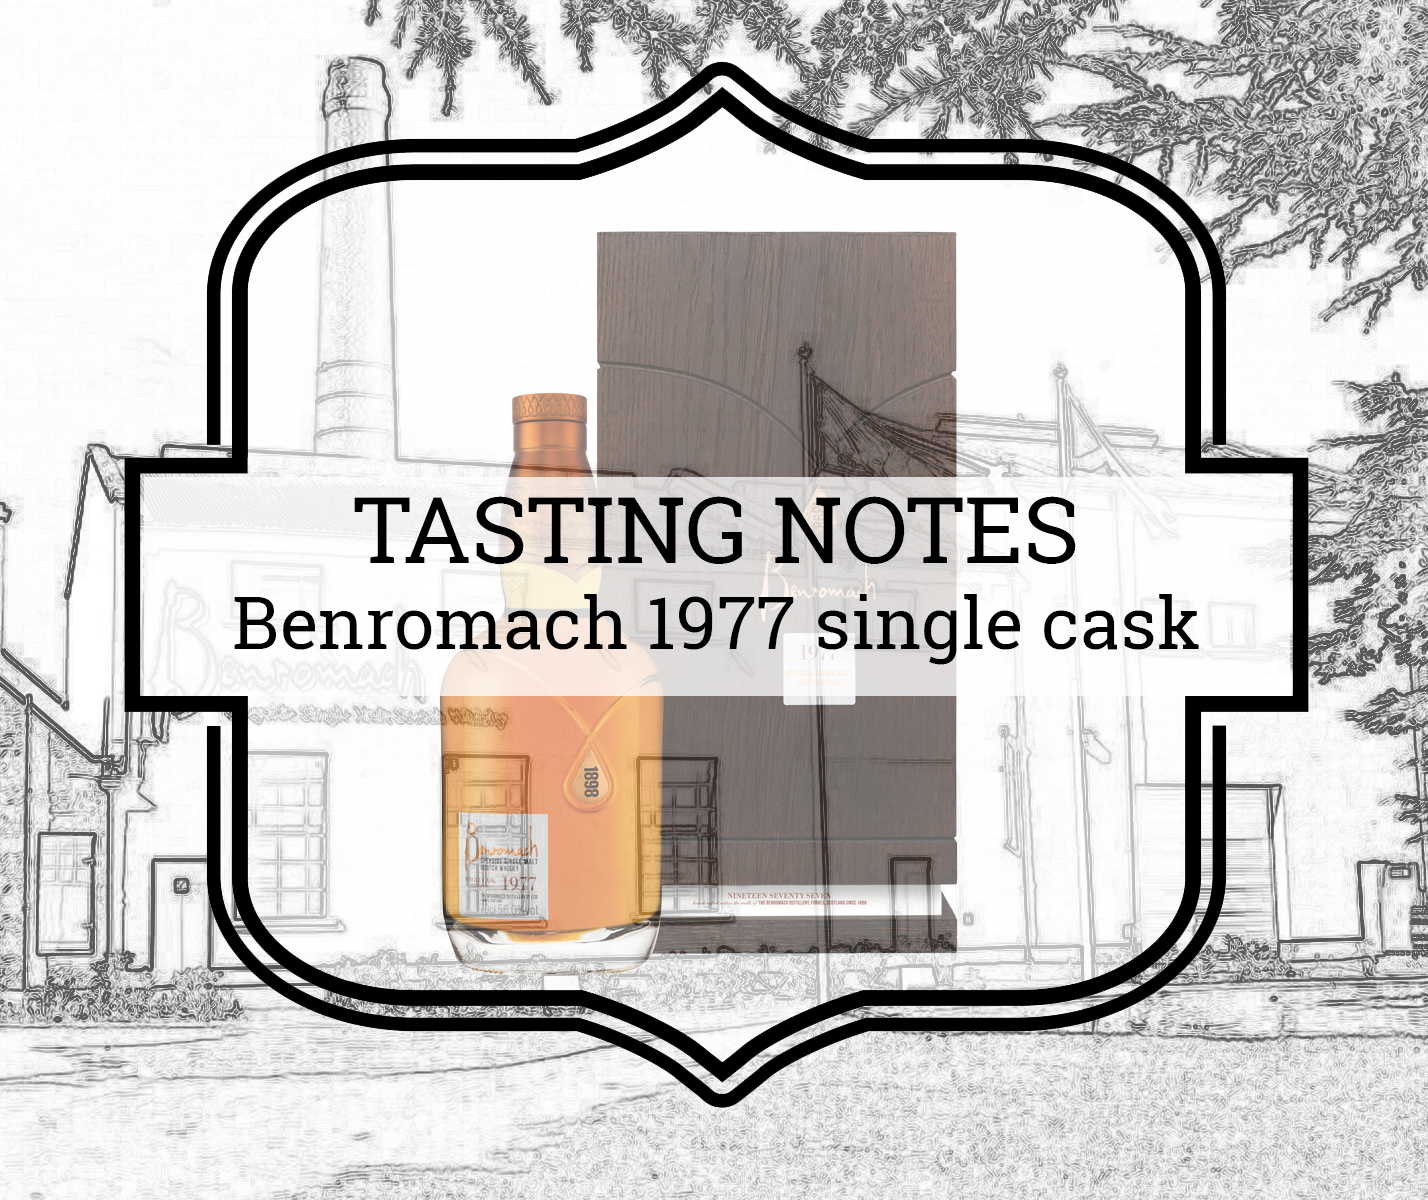 A Tasty Dram tasting notes Benromach 1977 single cask